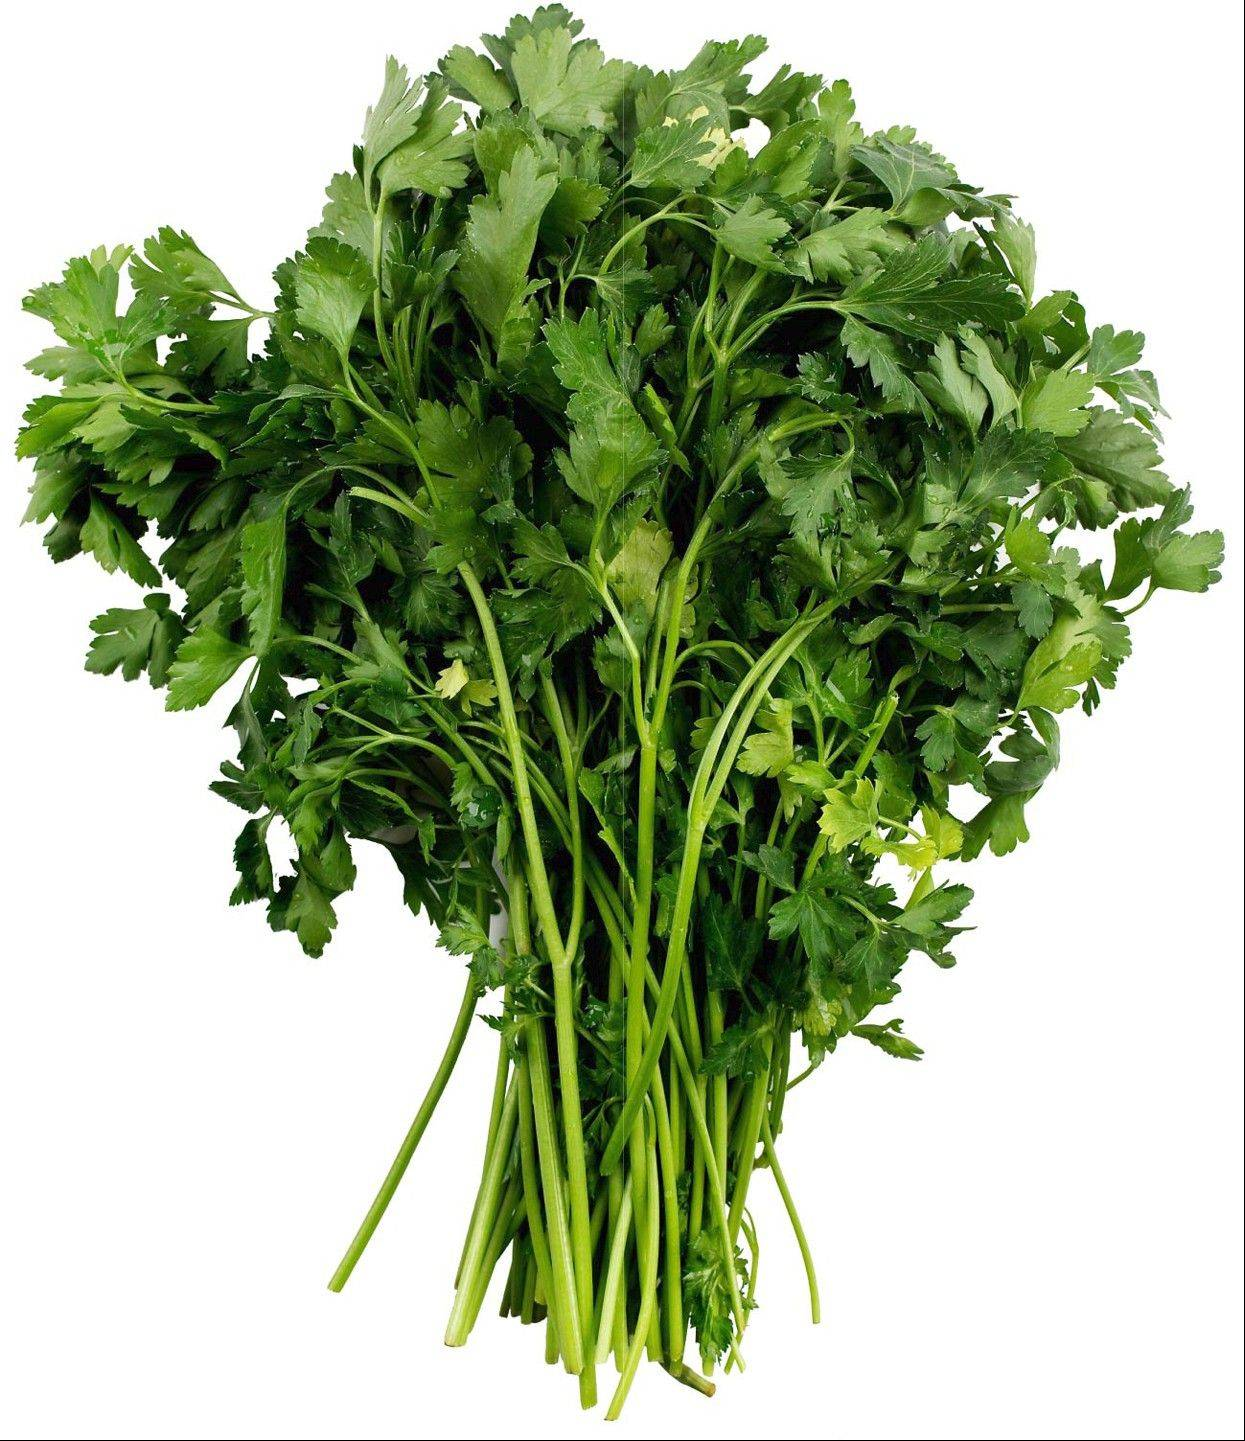 Flat or curly, parsley deserves a starring role in recipes.